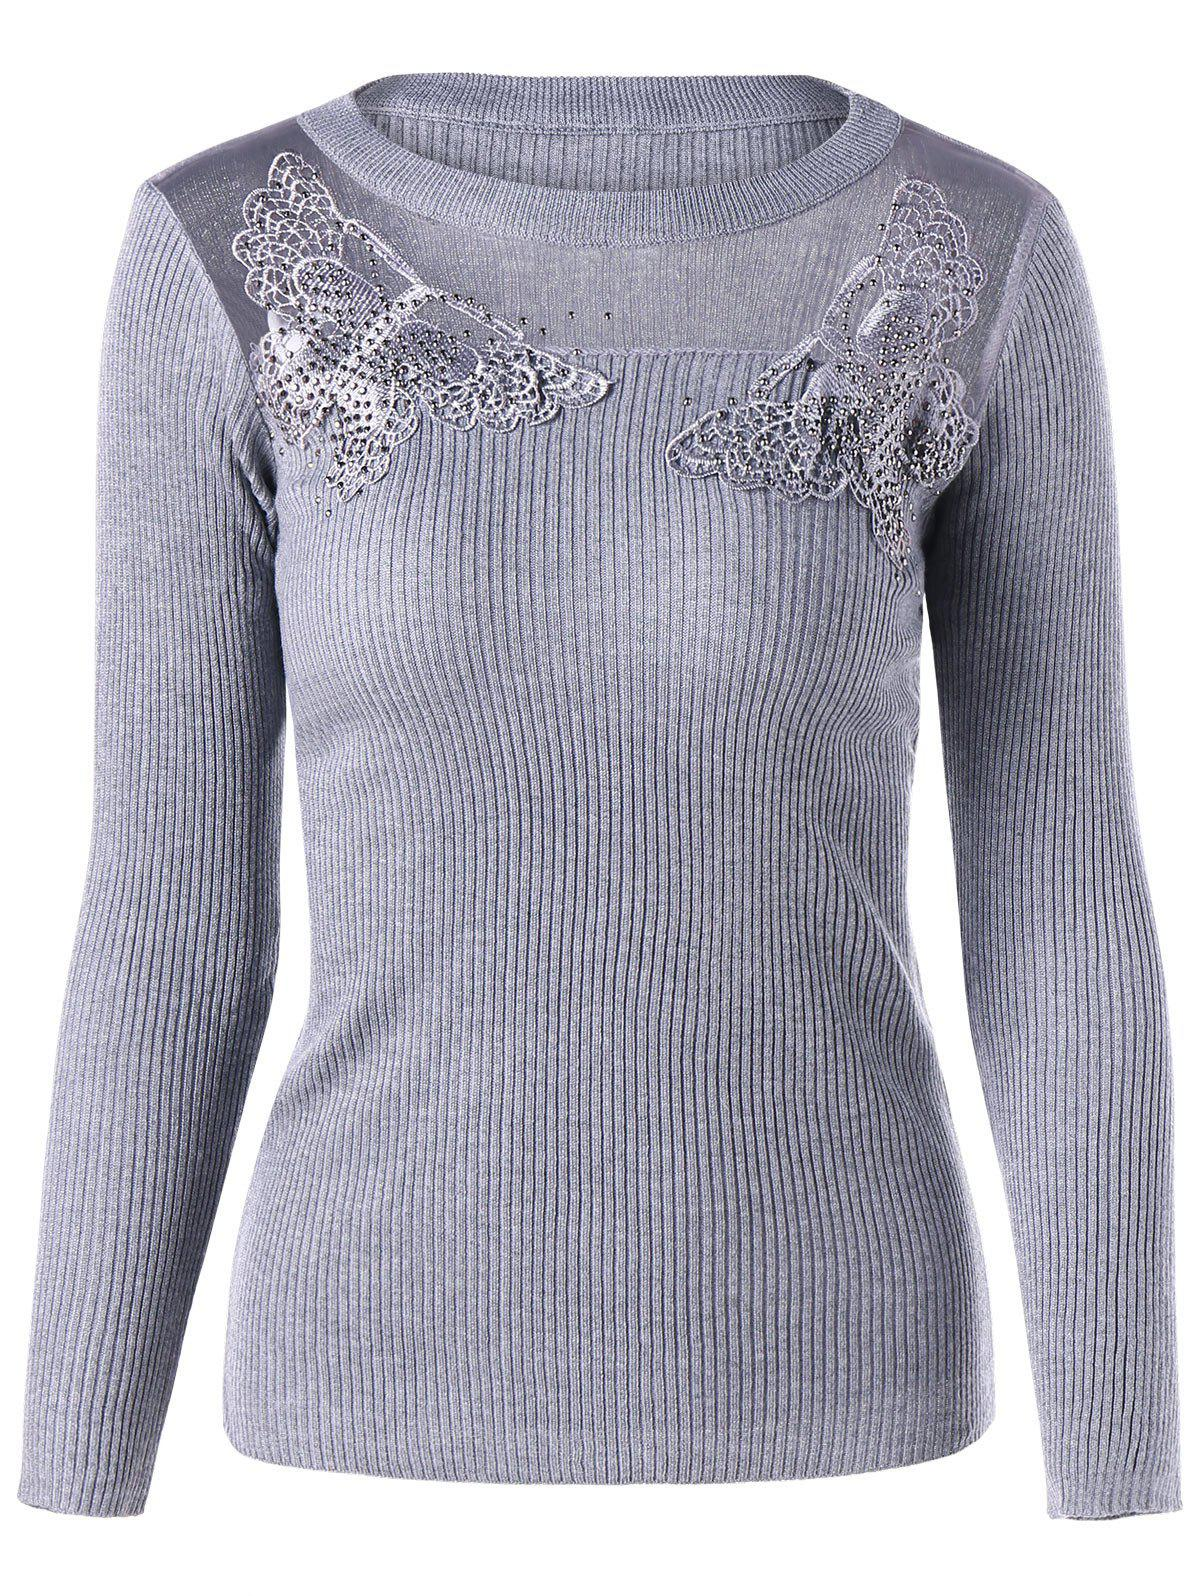 See Thru Lace Trim KnitwearWOMEN<br><br>Size: ONE SIZE; Color: GRAY; Type: Pullovers; Material: Polyester,Spandex; Sleeve Length: Full; Collar: Crew Neck; Style: Fashion; Pattern Type: Solid; Embellishment: Appliques,Lace; Season: Fall,Spring; Weight: 0.3000kg; Package Contents: 1 x Knitwear;